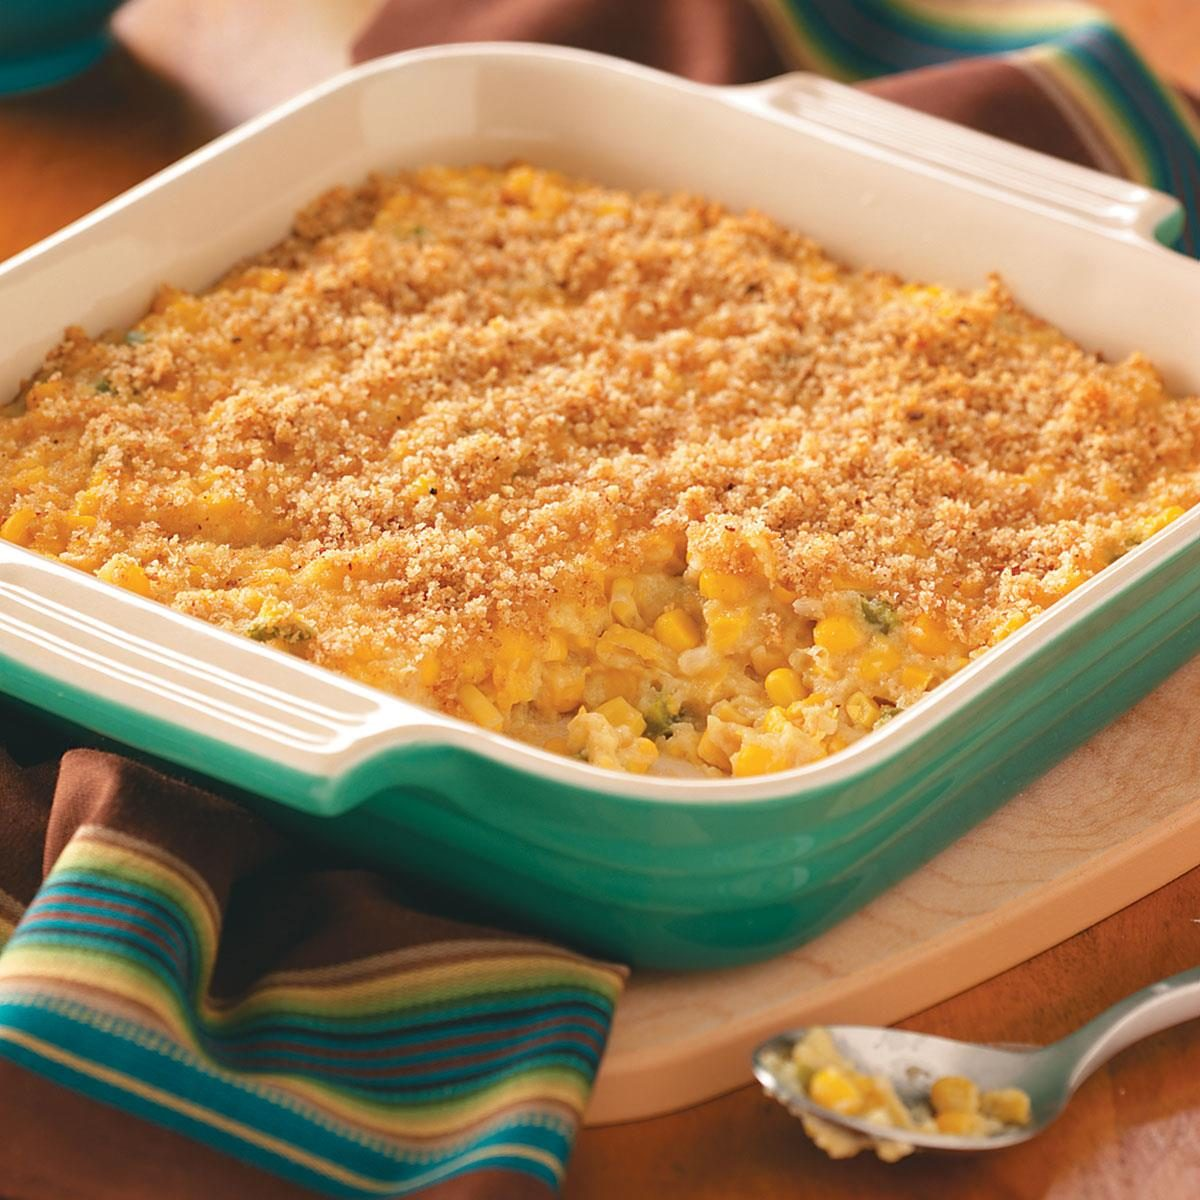 Asparagus Casserole Recipes With Ritz Crackers